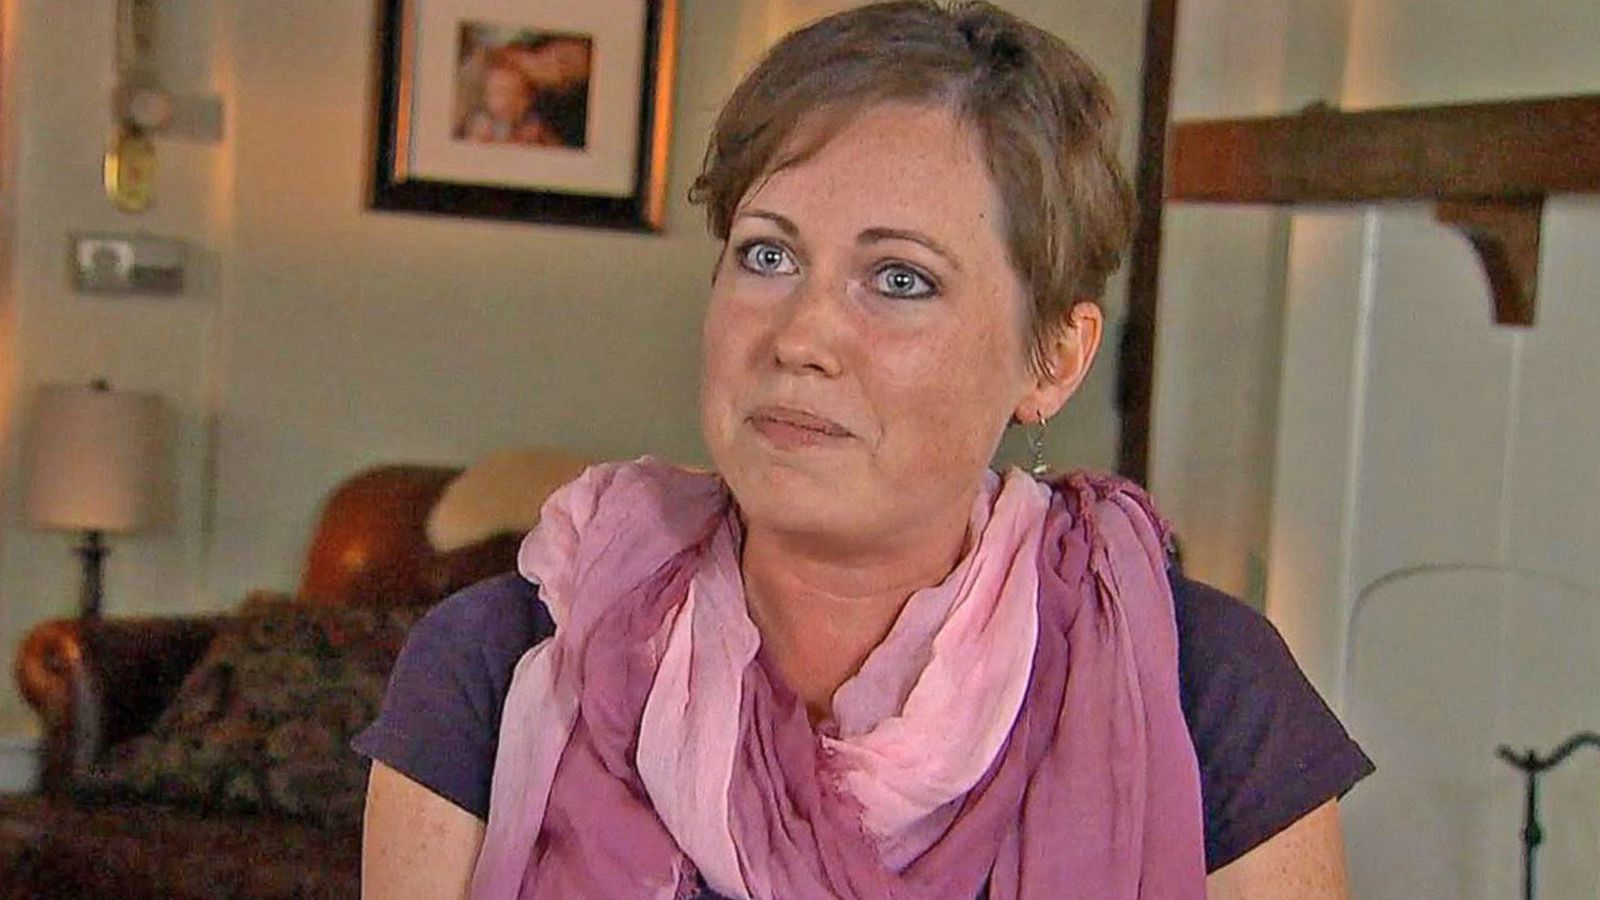 VIDEO: 'Anti-Vaxxer' Mom Changes Mind After Scary Wake-up Call